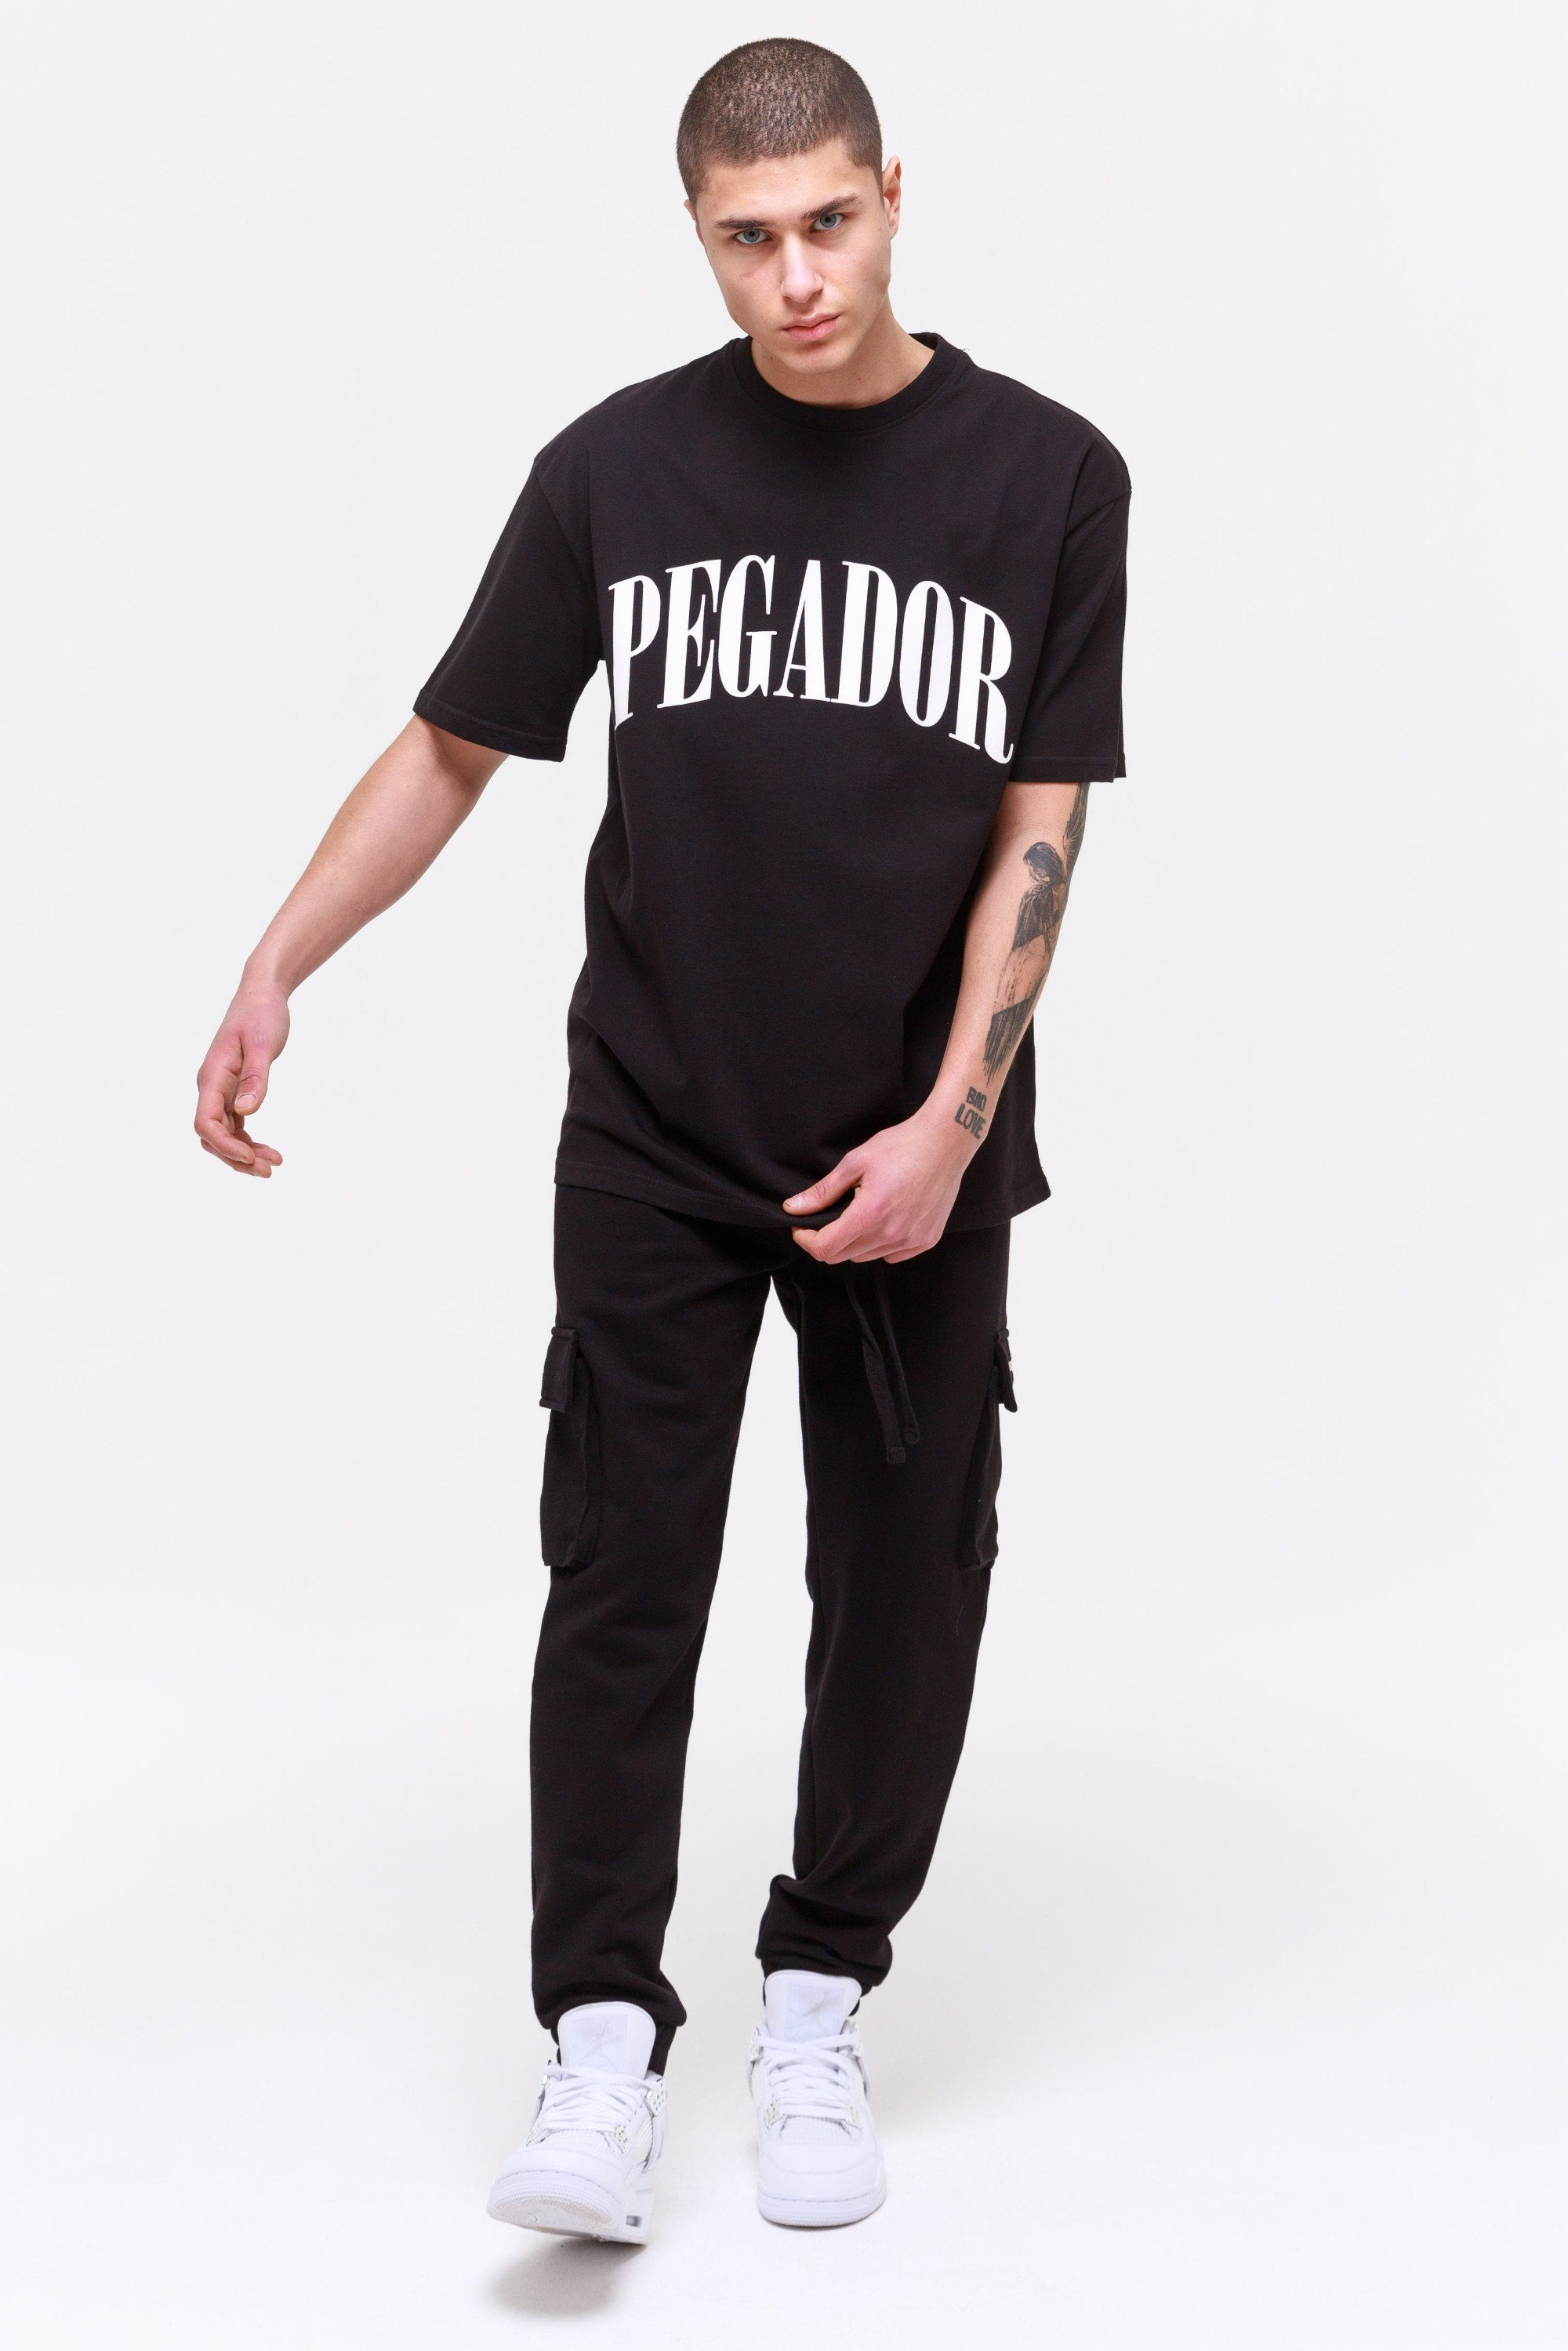 Cali Oversized Tee Black Coconut T-SHIRT Wild Society